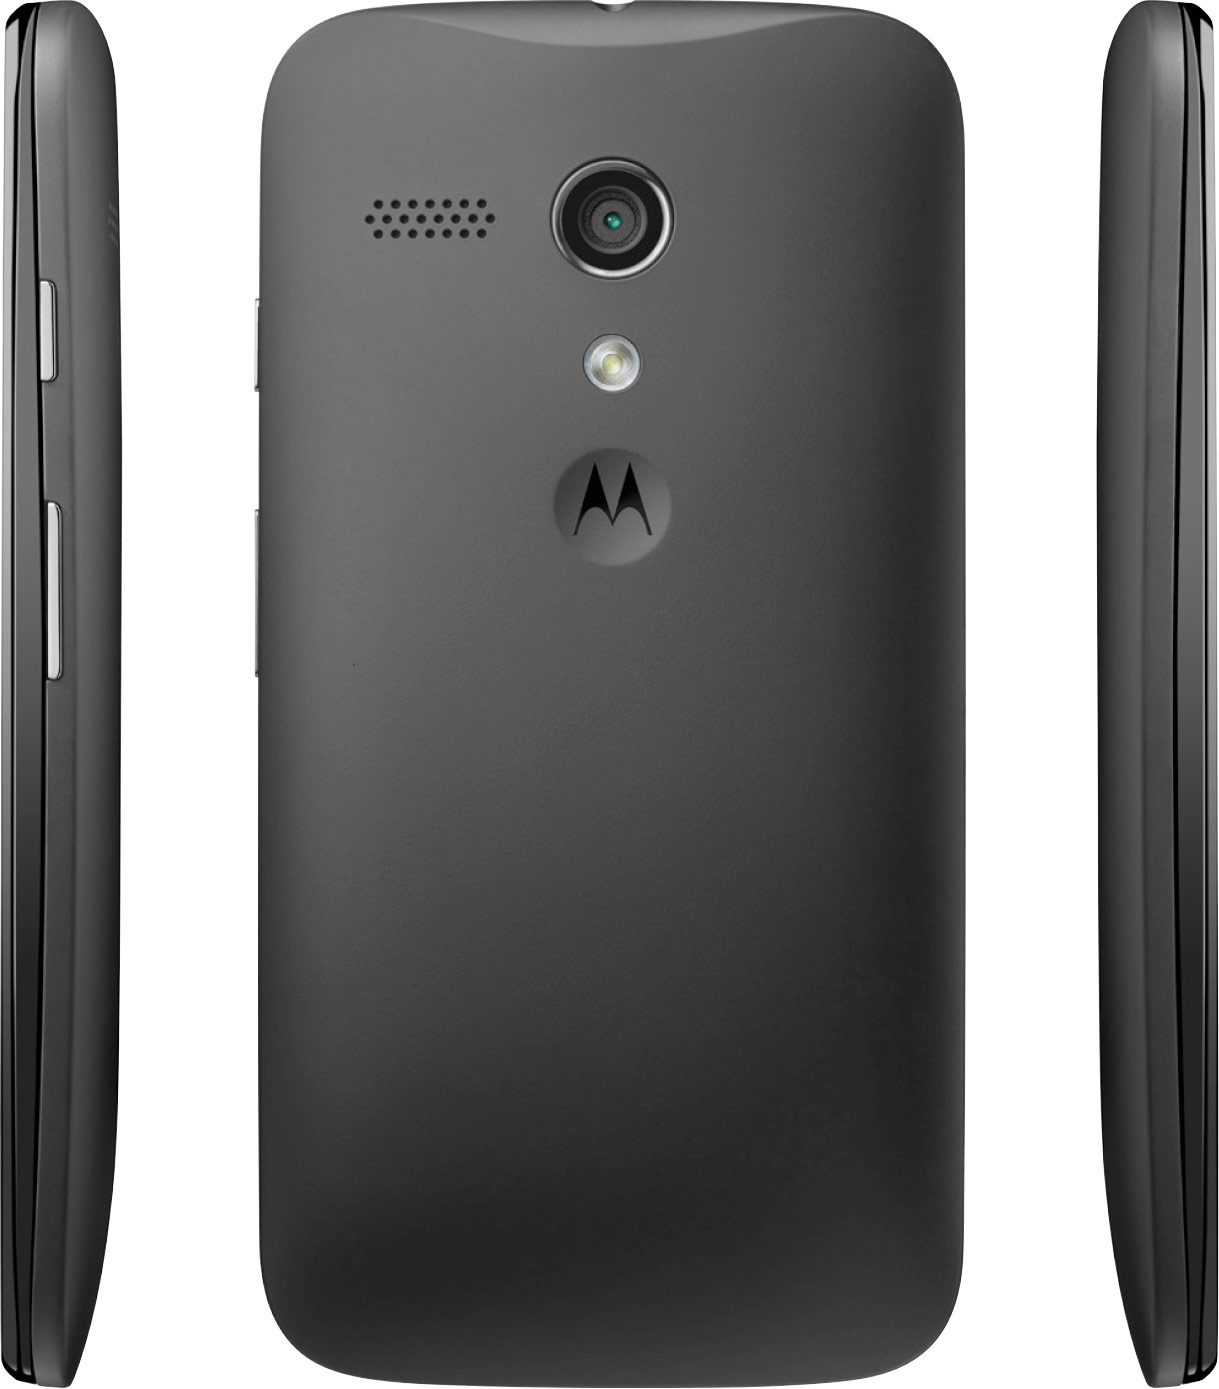 Camera Motorola Android Phone Price motorola moto g xt 1032 8 gb black amazon co uk electronics built to last